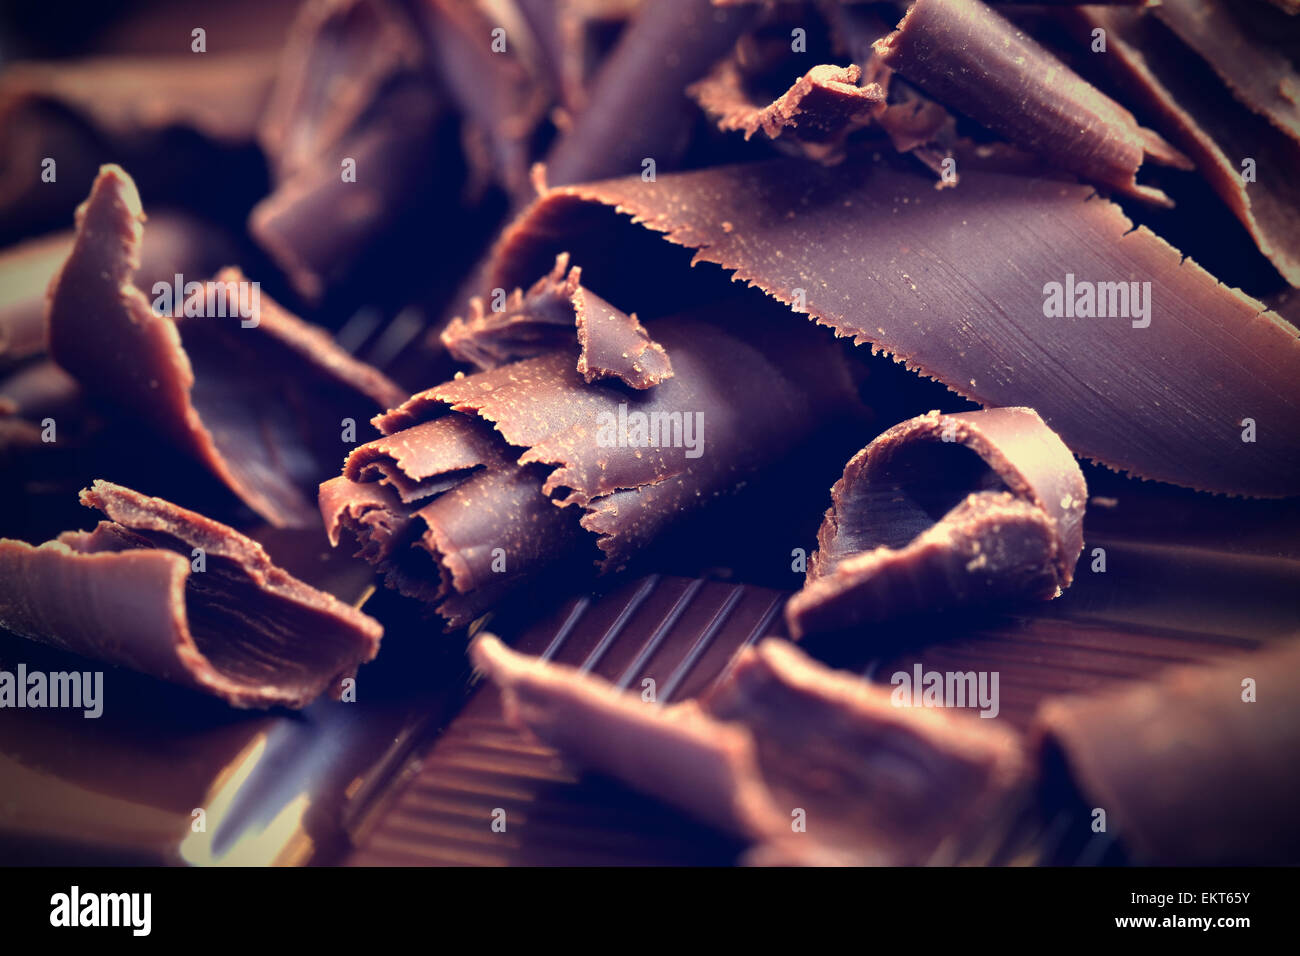 Dark chocolate shavings - Stock Image